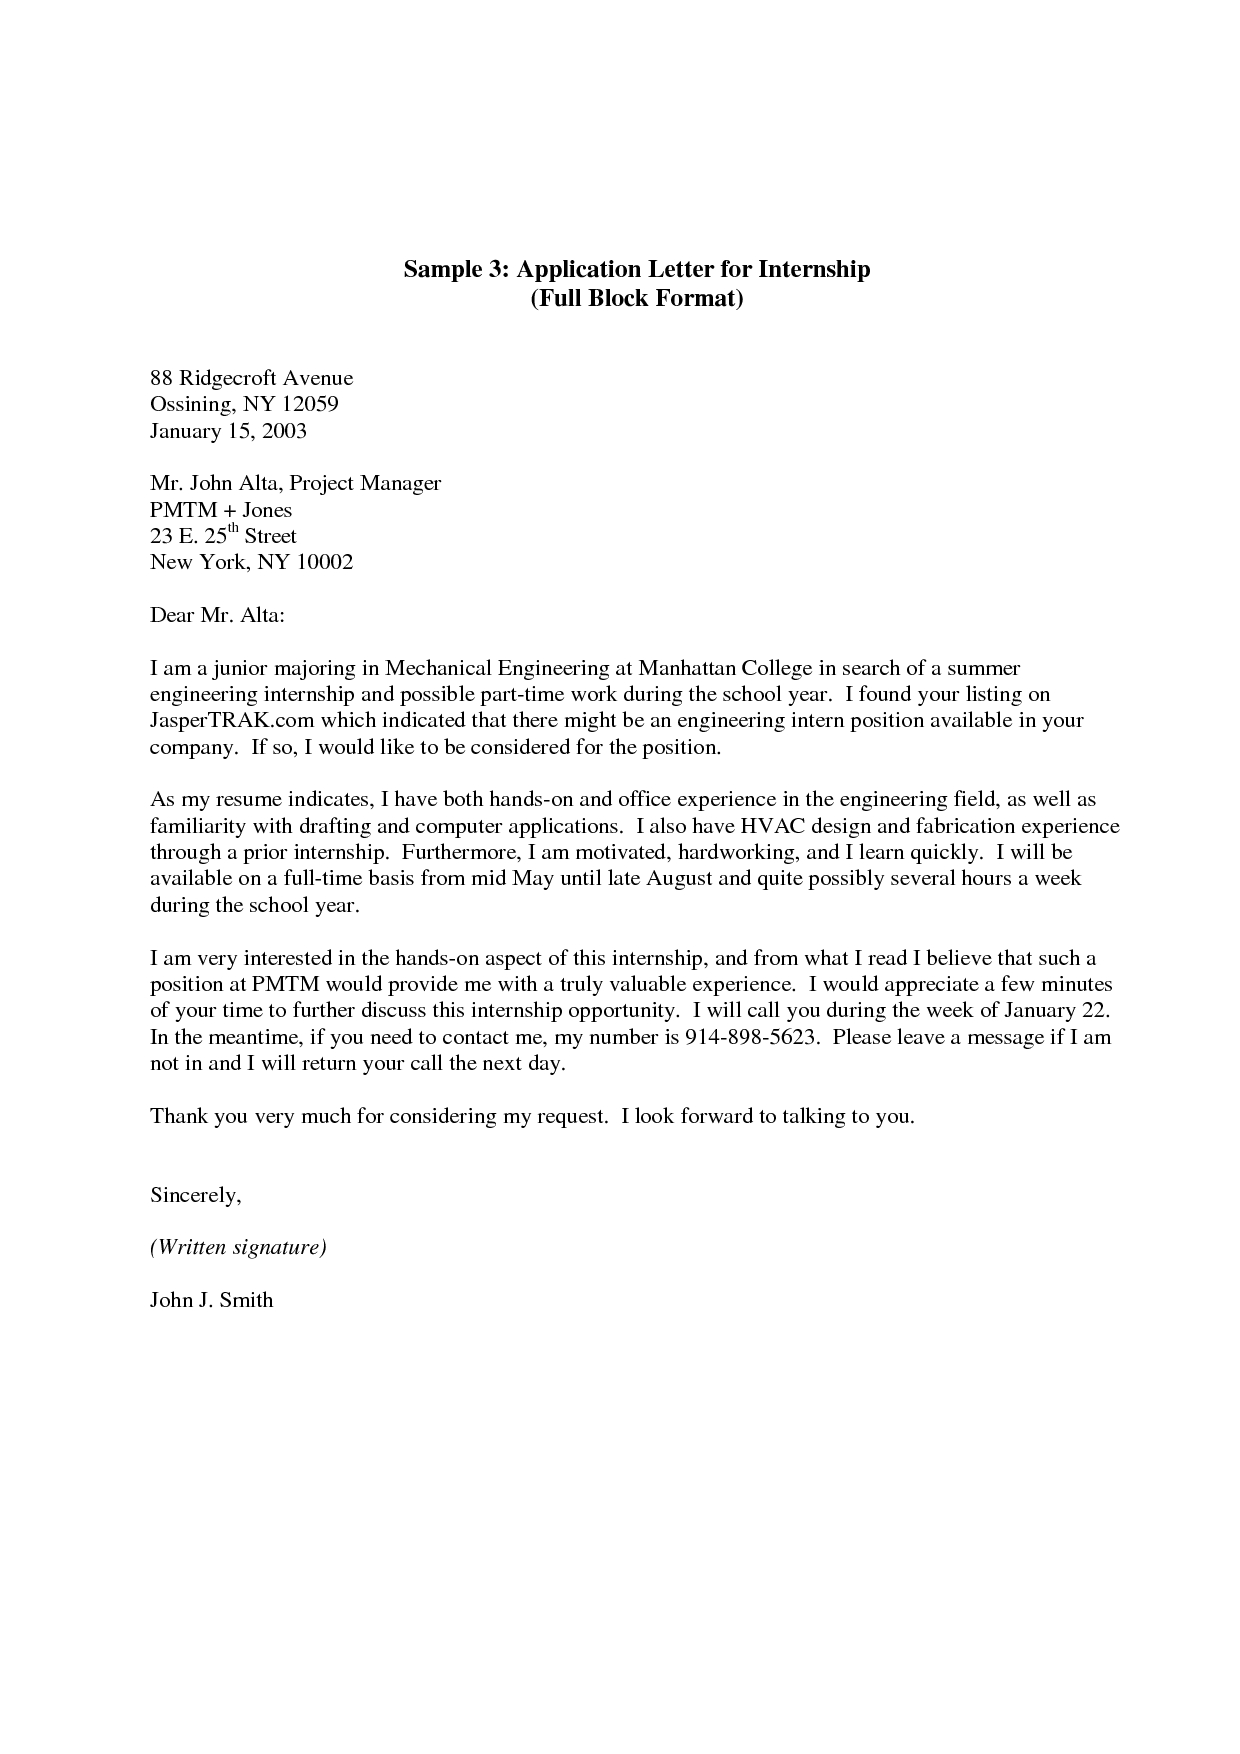 Modified Block Letter Template - Internship Application Letter Here is A Sample Cover Letter for